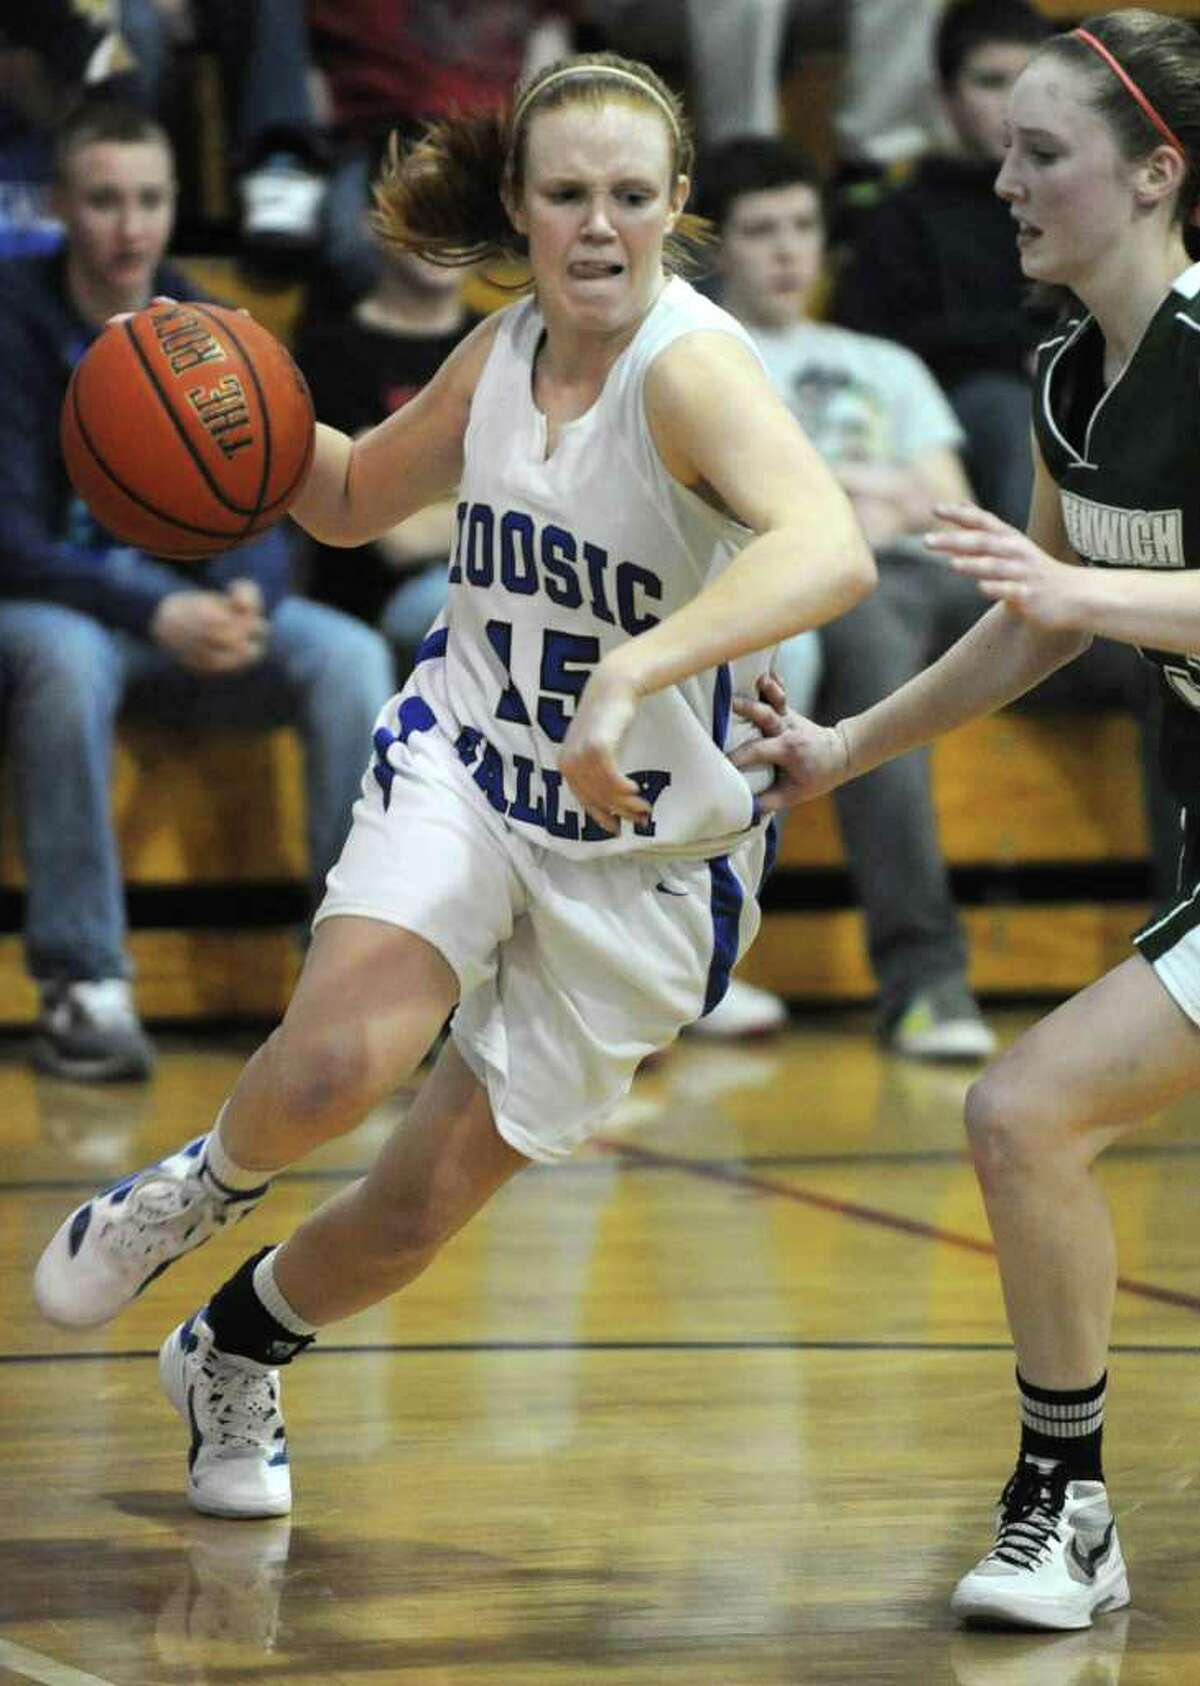 Hoosic Valley guard Whitney Kugler dribbles the ball during a basketball game against Greenwich on Wednesday, Feb. 8, 2012 in Schaghticoke, N.Y. (Lori Van Buren / Times Union)